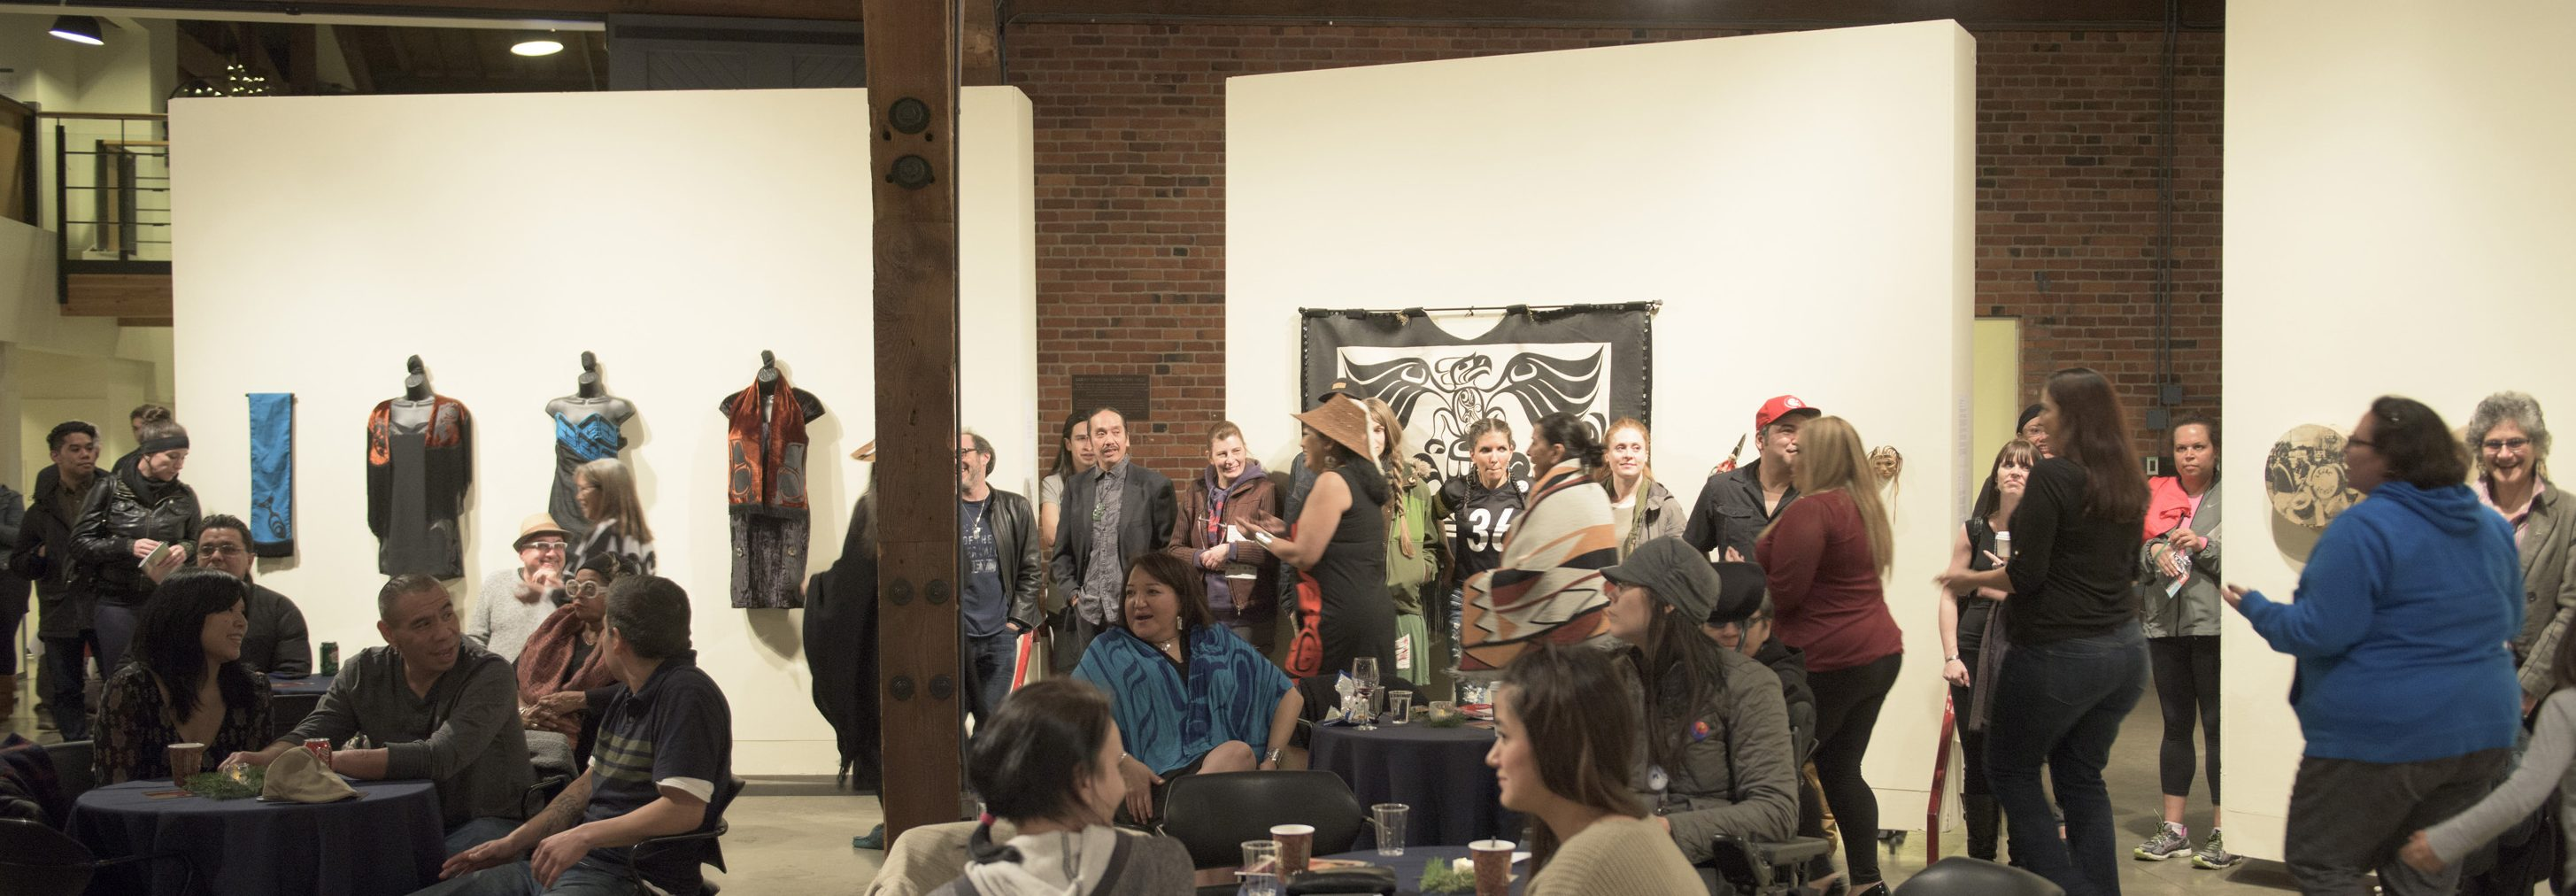 Kwèykw`áystway: Speaking With One Another – Visual Arts Exhibition 2017